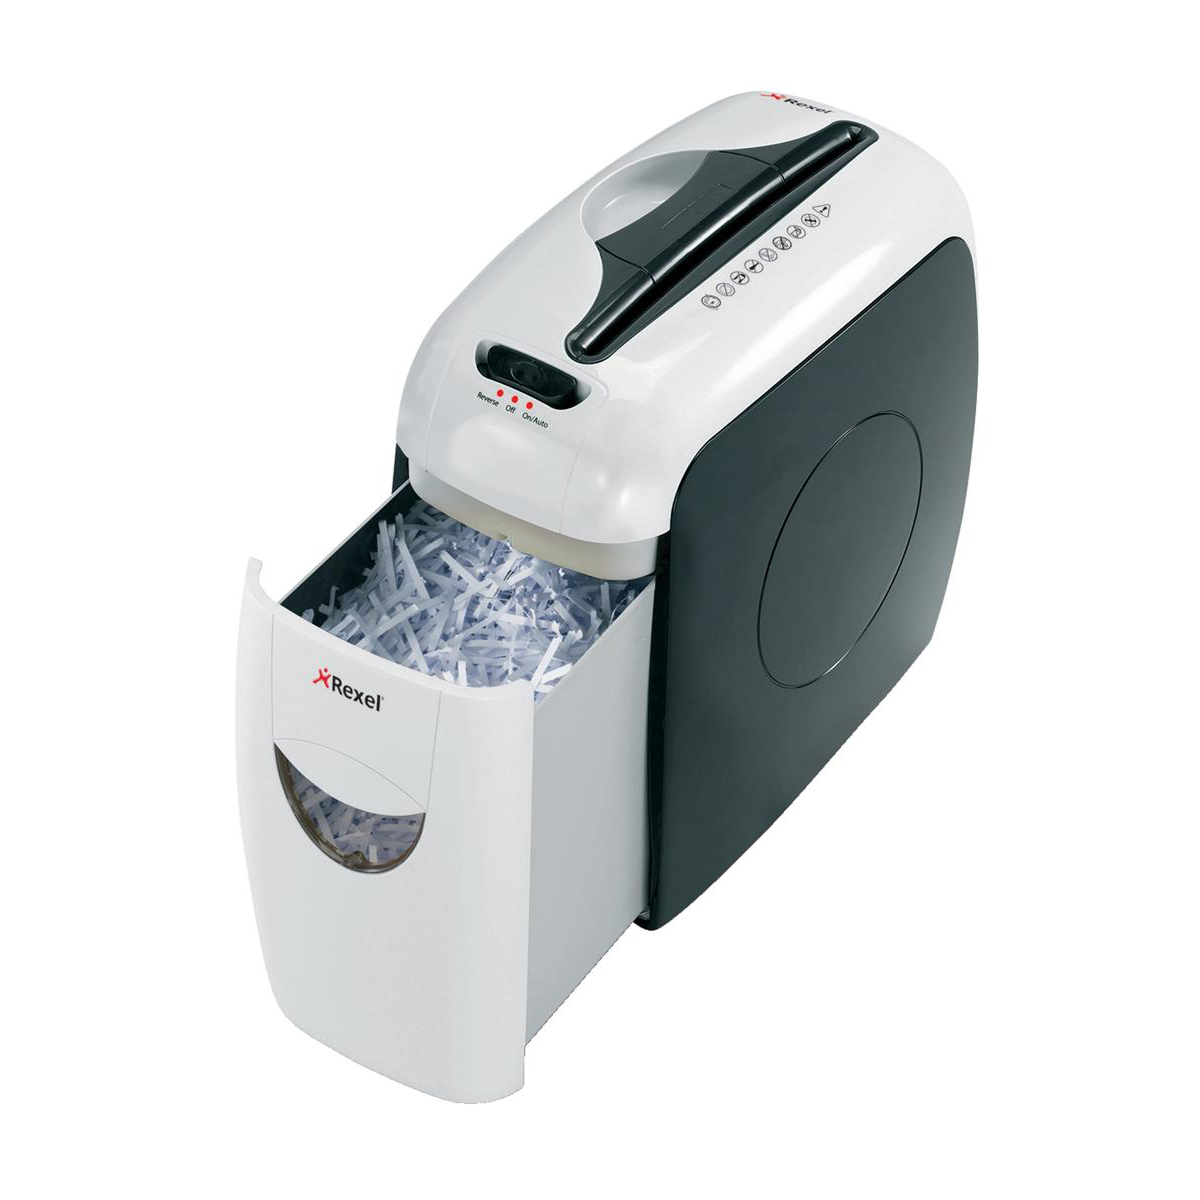 Rexel Style Shredder Cross-cut P-4 7.5 Litres Ref 2101942UK